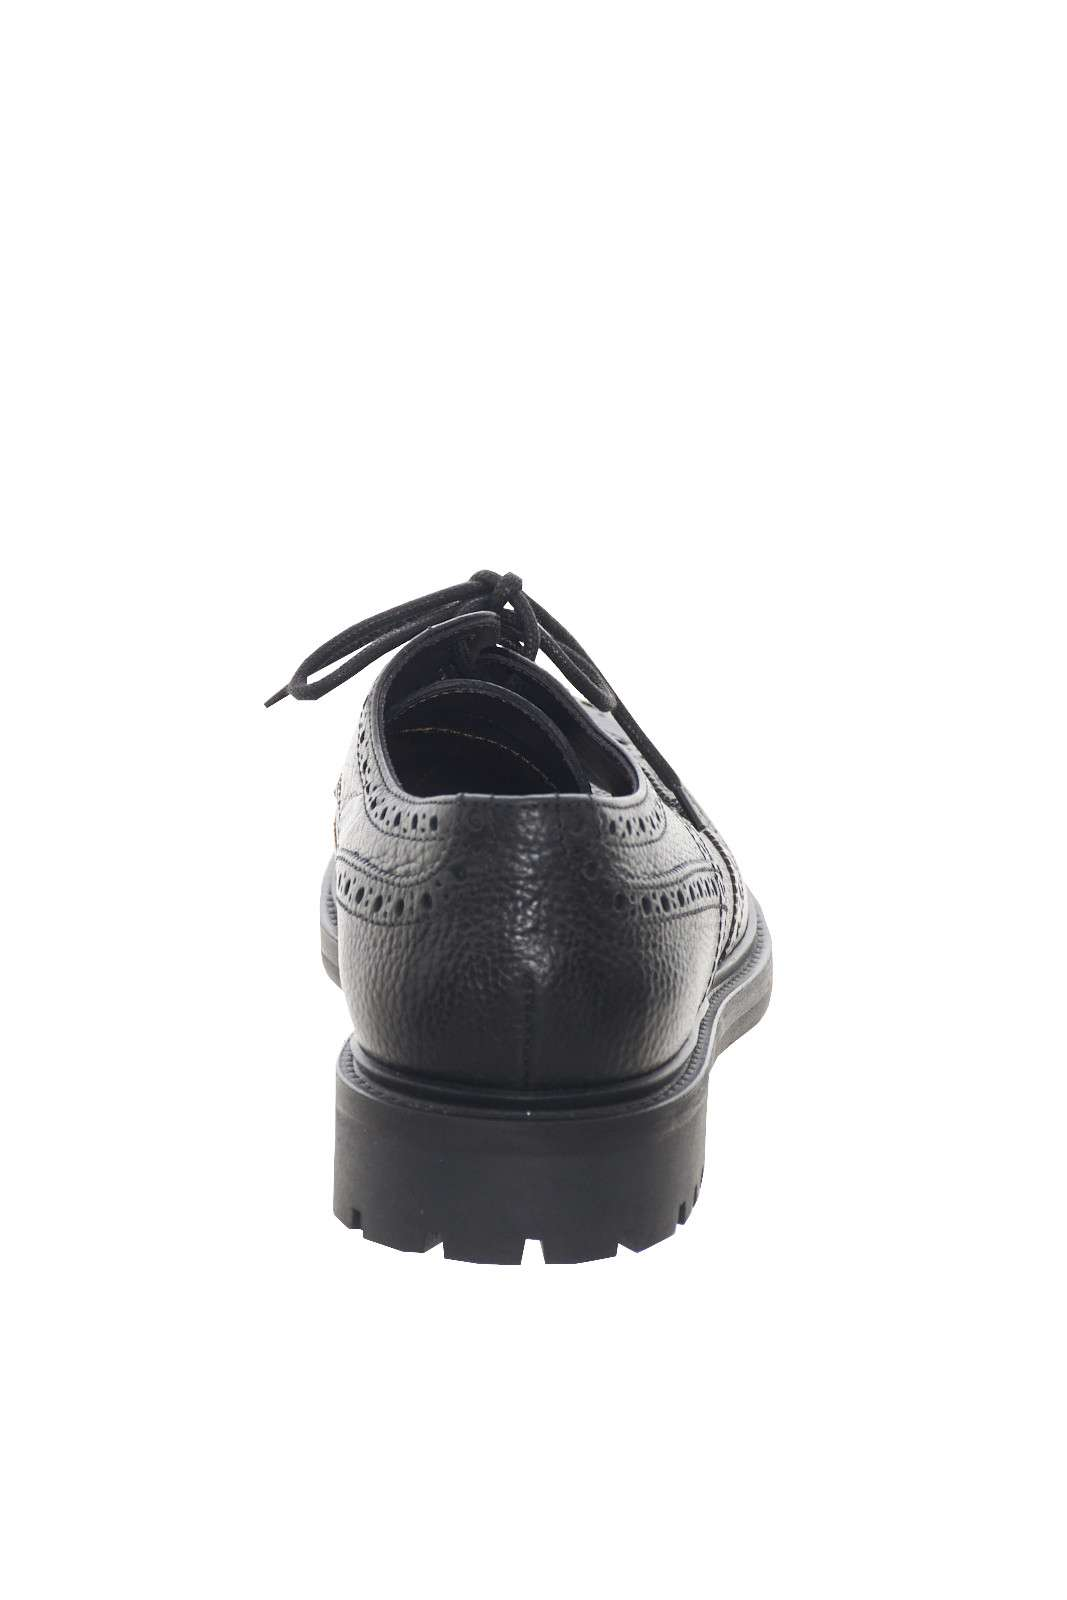 https://www.parmax.com/media/catalog/product/a/i/AI-outlet_parmax-scarpe-uomo-MFW-Collection-112483MW-C.jpg